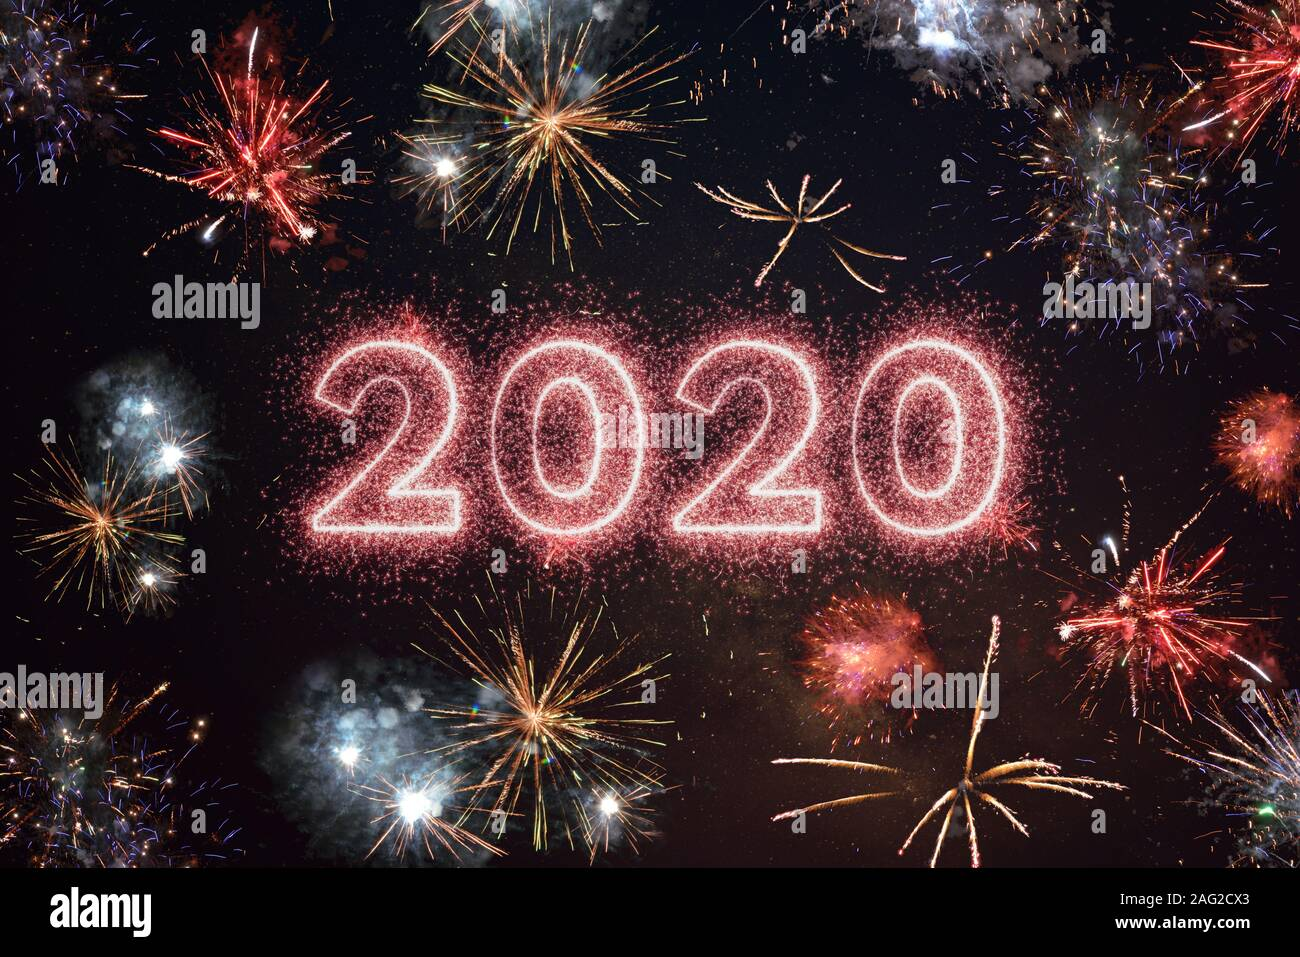 happy new year 2020 high resolution stock photography and images alamy https www alamy com 2020 year written with sparkle fireworks on night sky surrounded by fireworks of different colors happy new year 2020 greeting concept image336885531 html